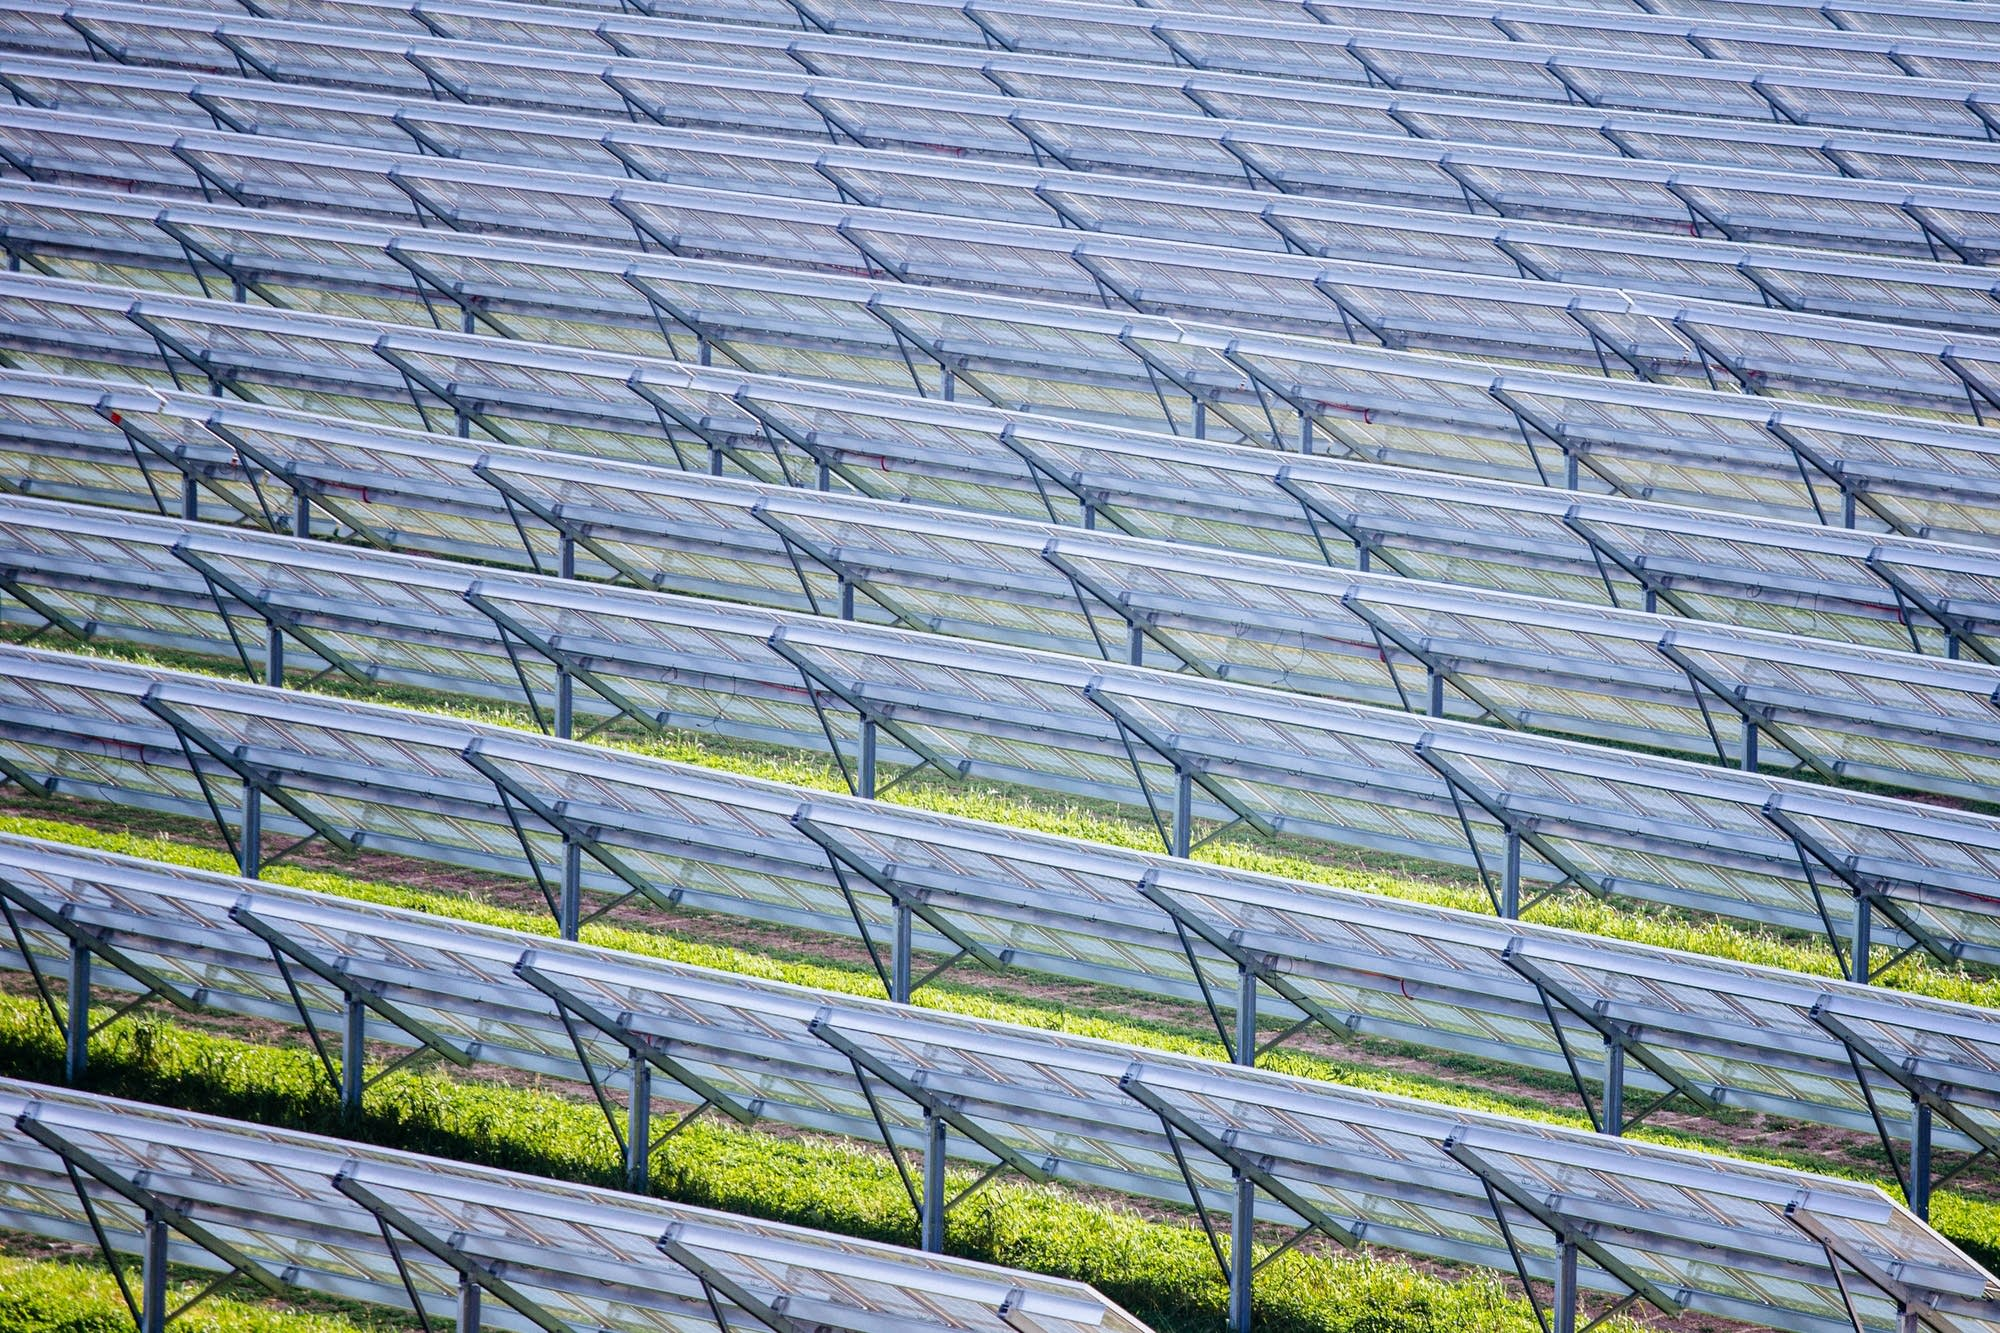 Solar panels stretch across Eichten's solar farm.